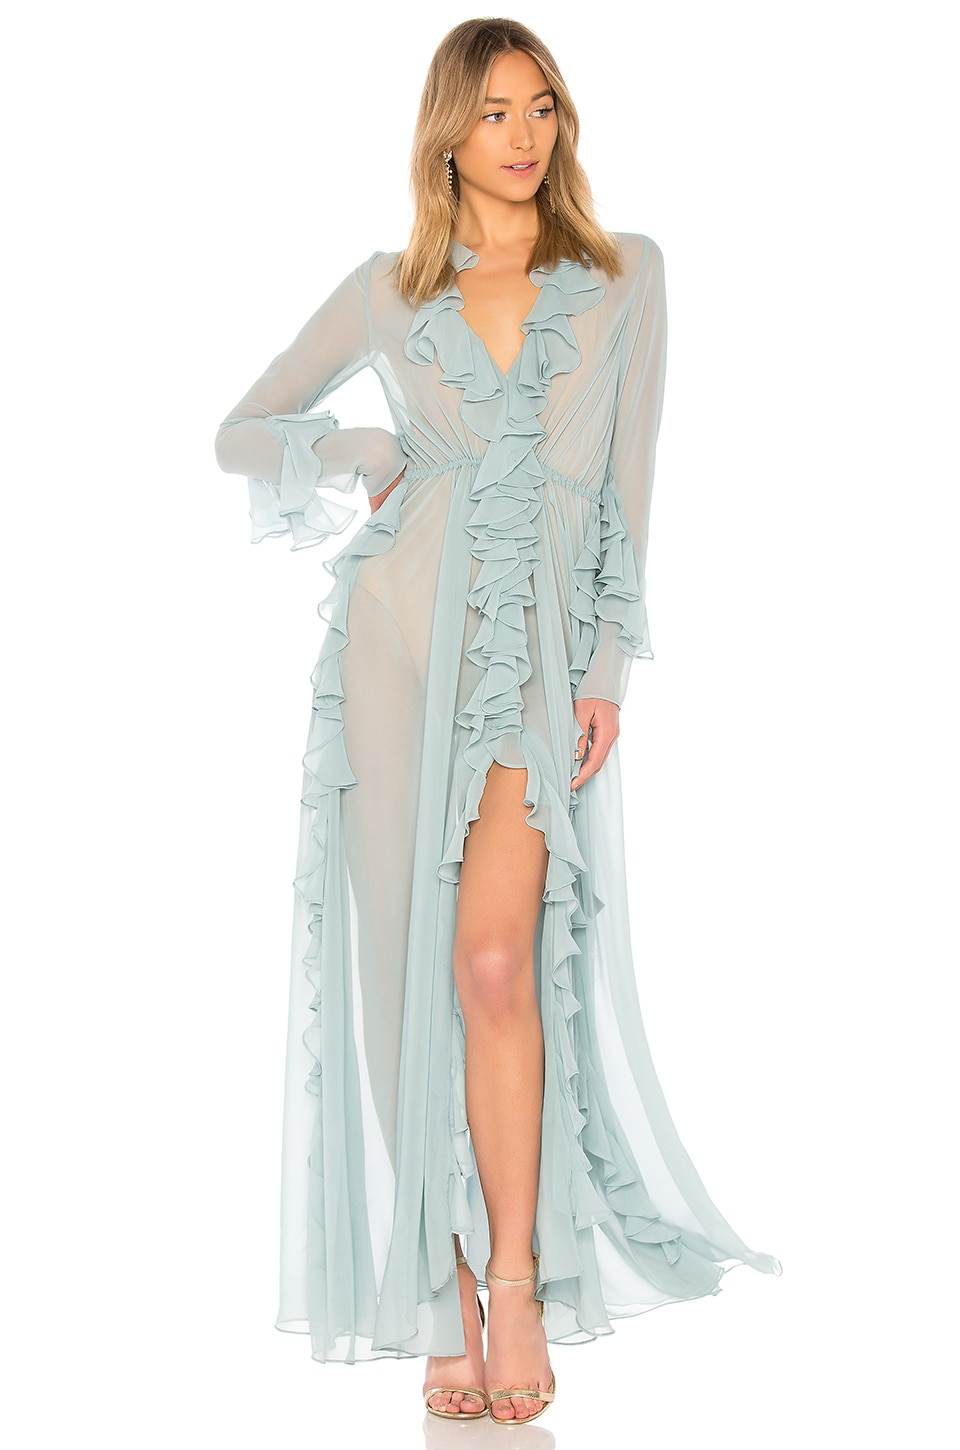 x REVOLVE Analeigh Dress in Sage. - size M (also in S,XS) Michael Costello